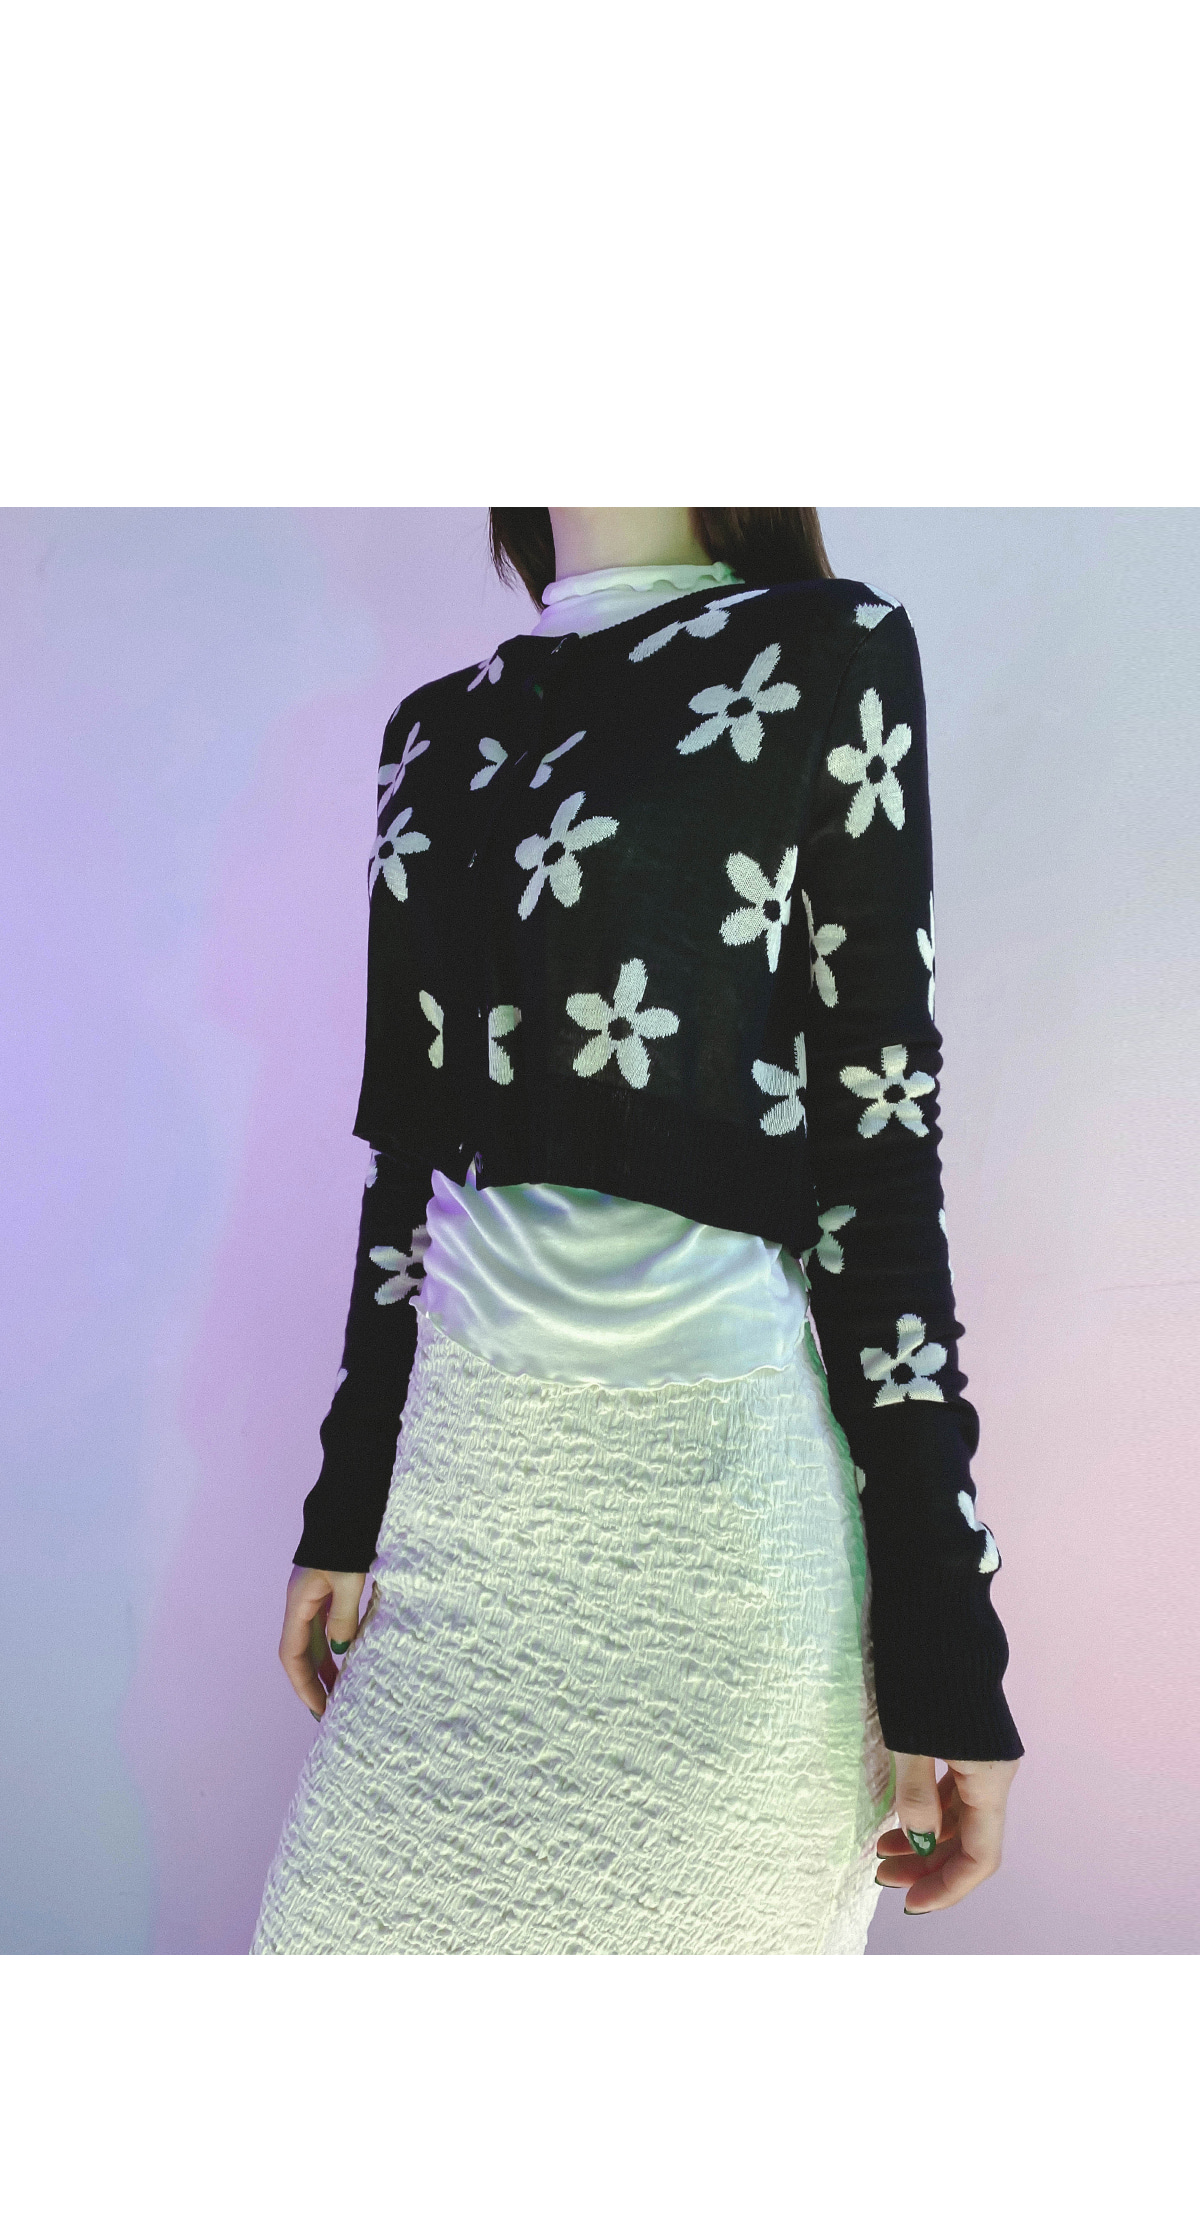 Flower fury knit cardigan